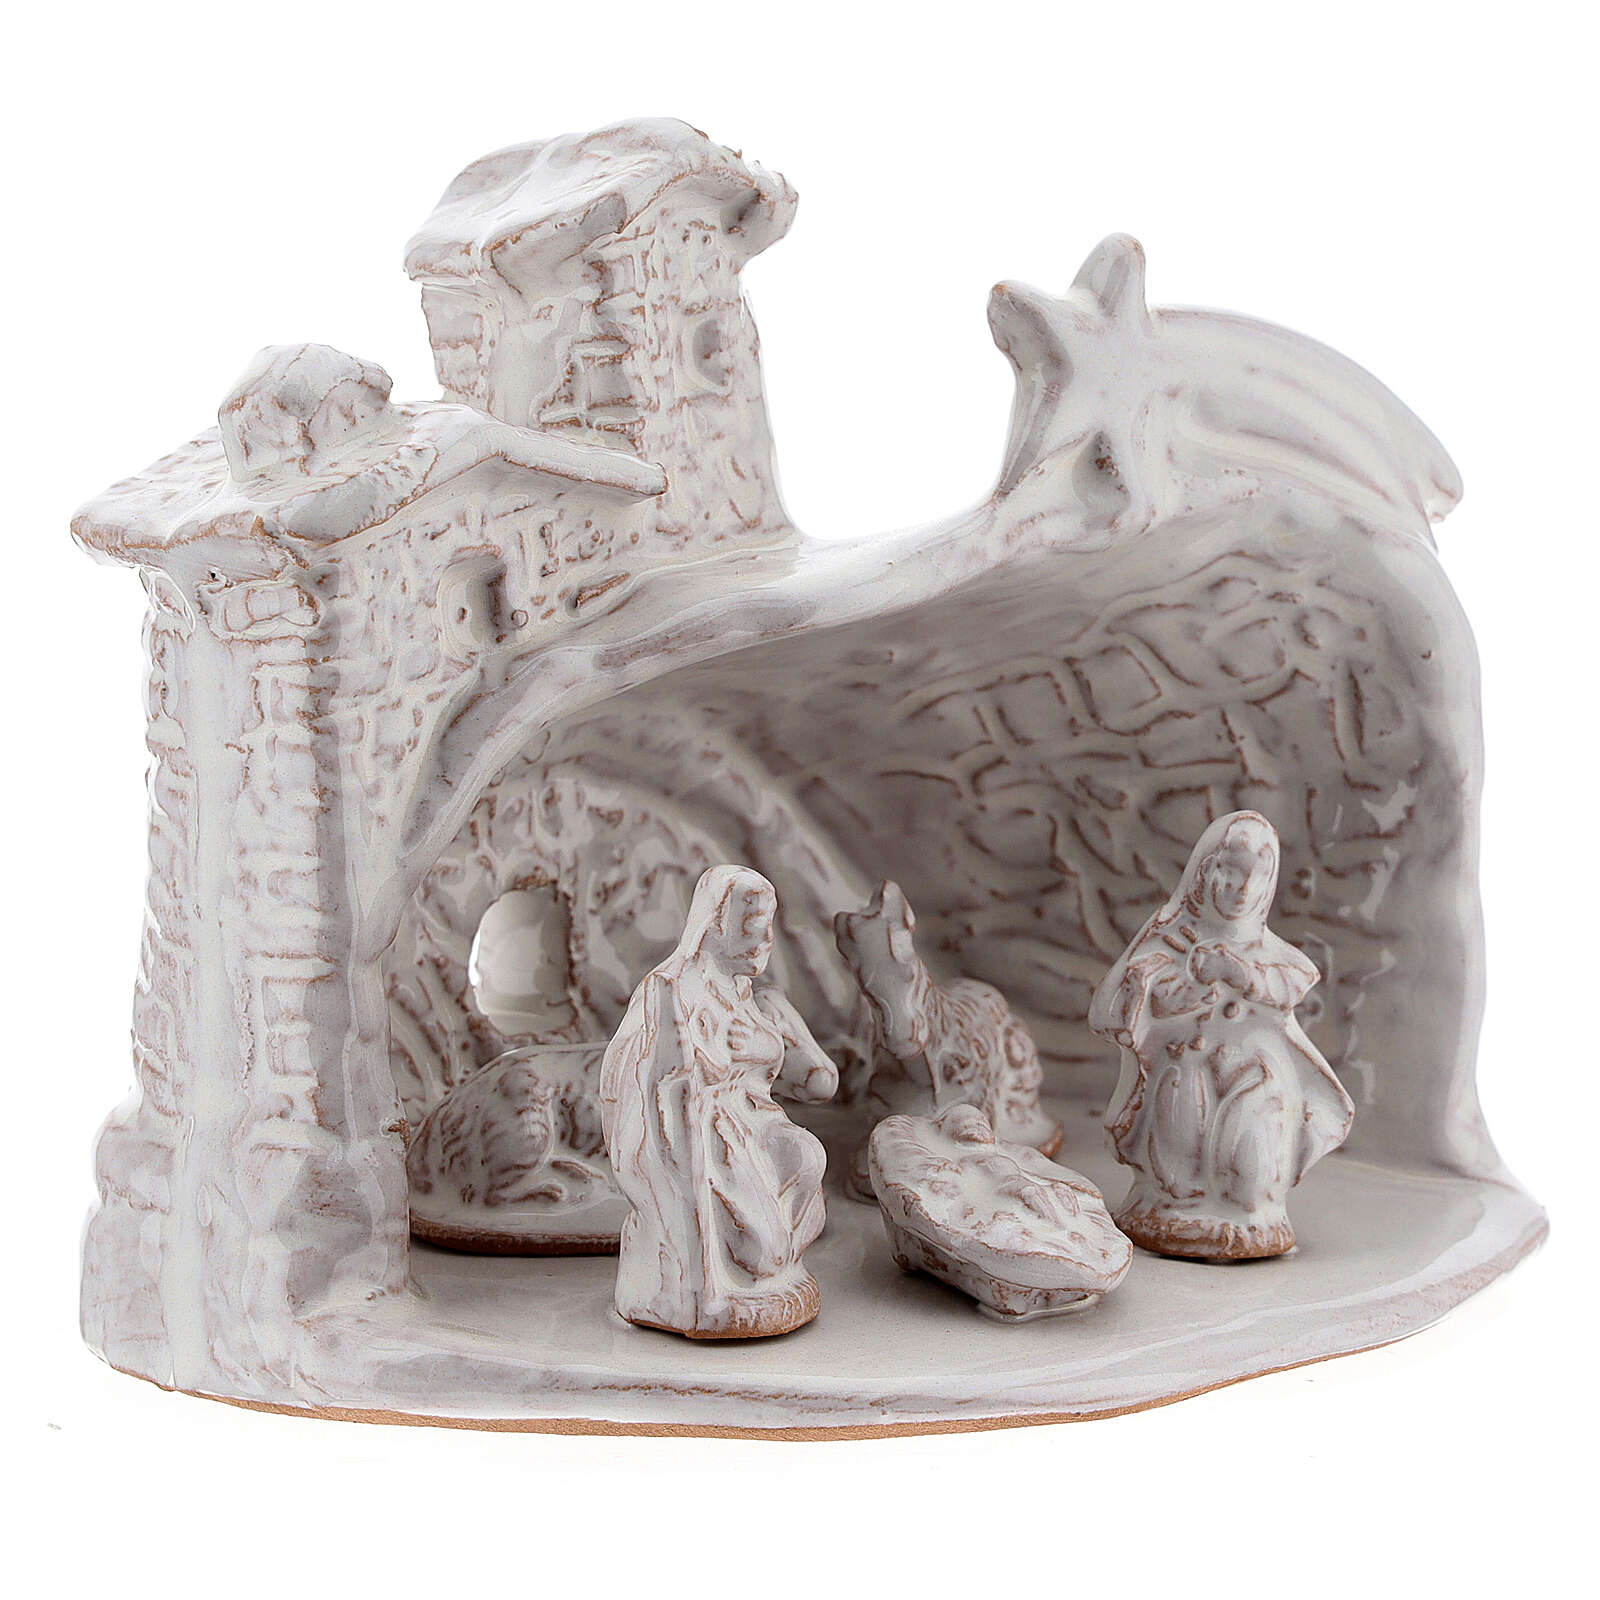 Nativity hut in white Deruta terracotta 10 cm 4